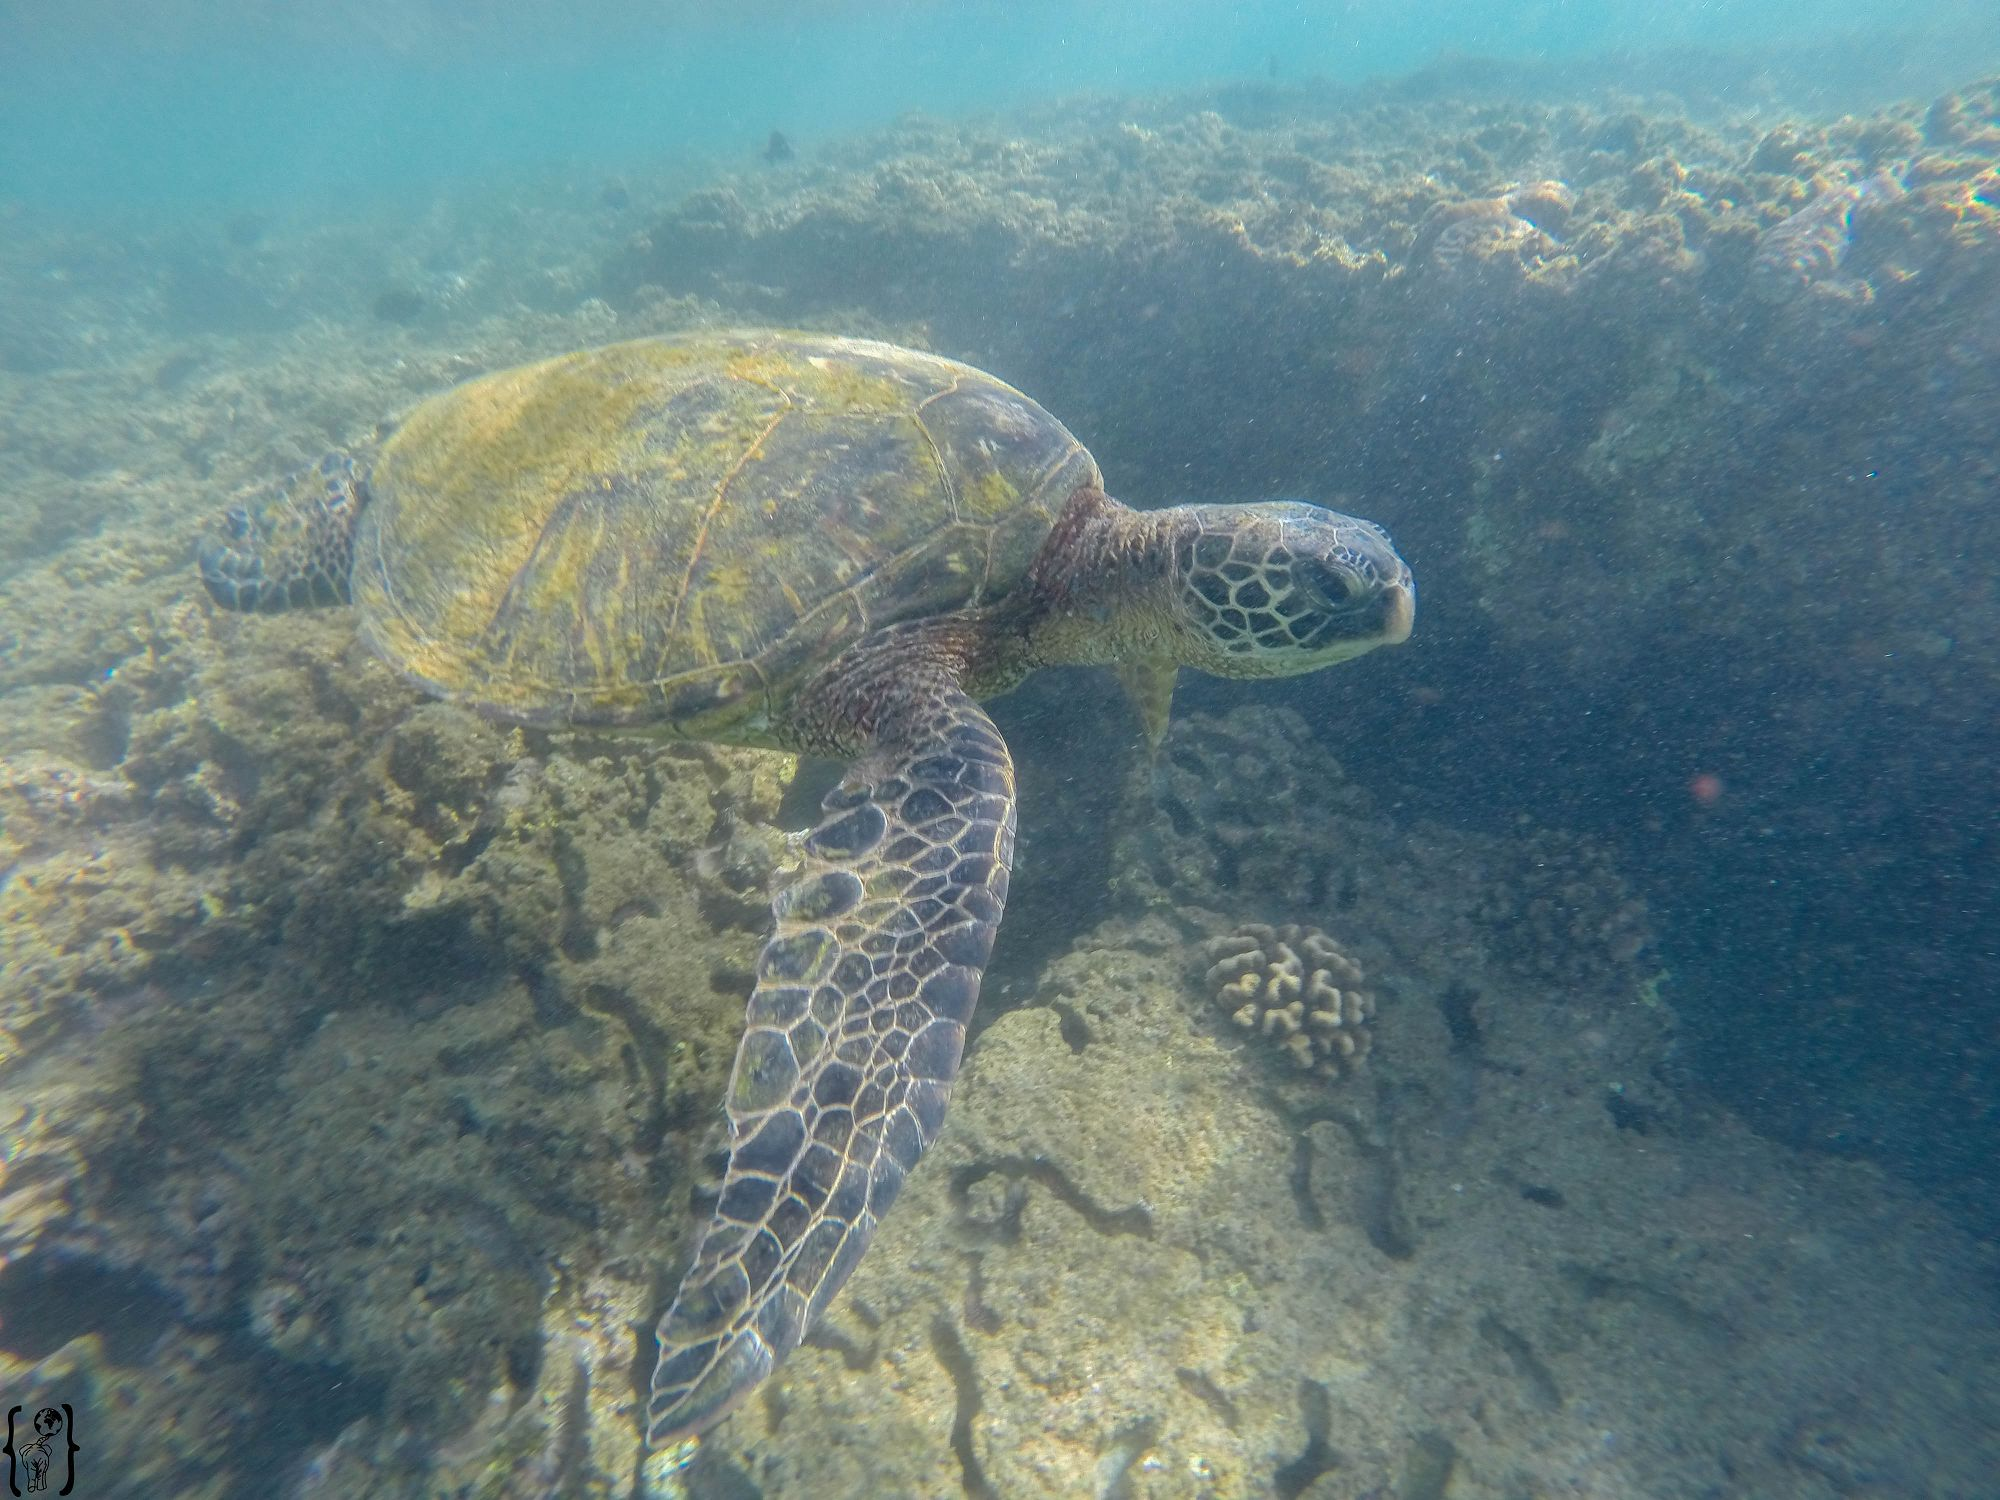 13 Oahu snorkeling with turtles every day